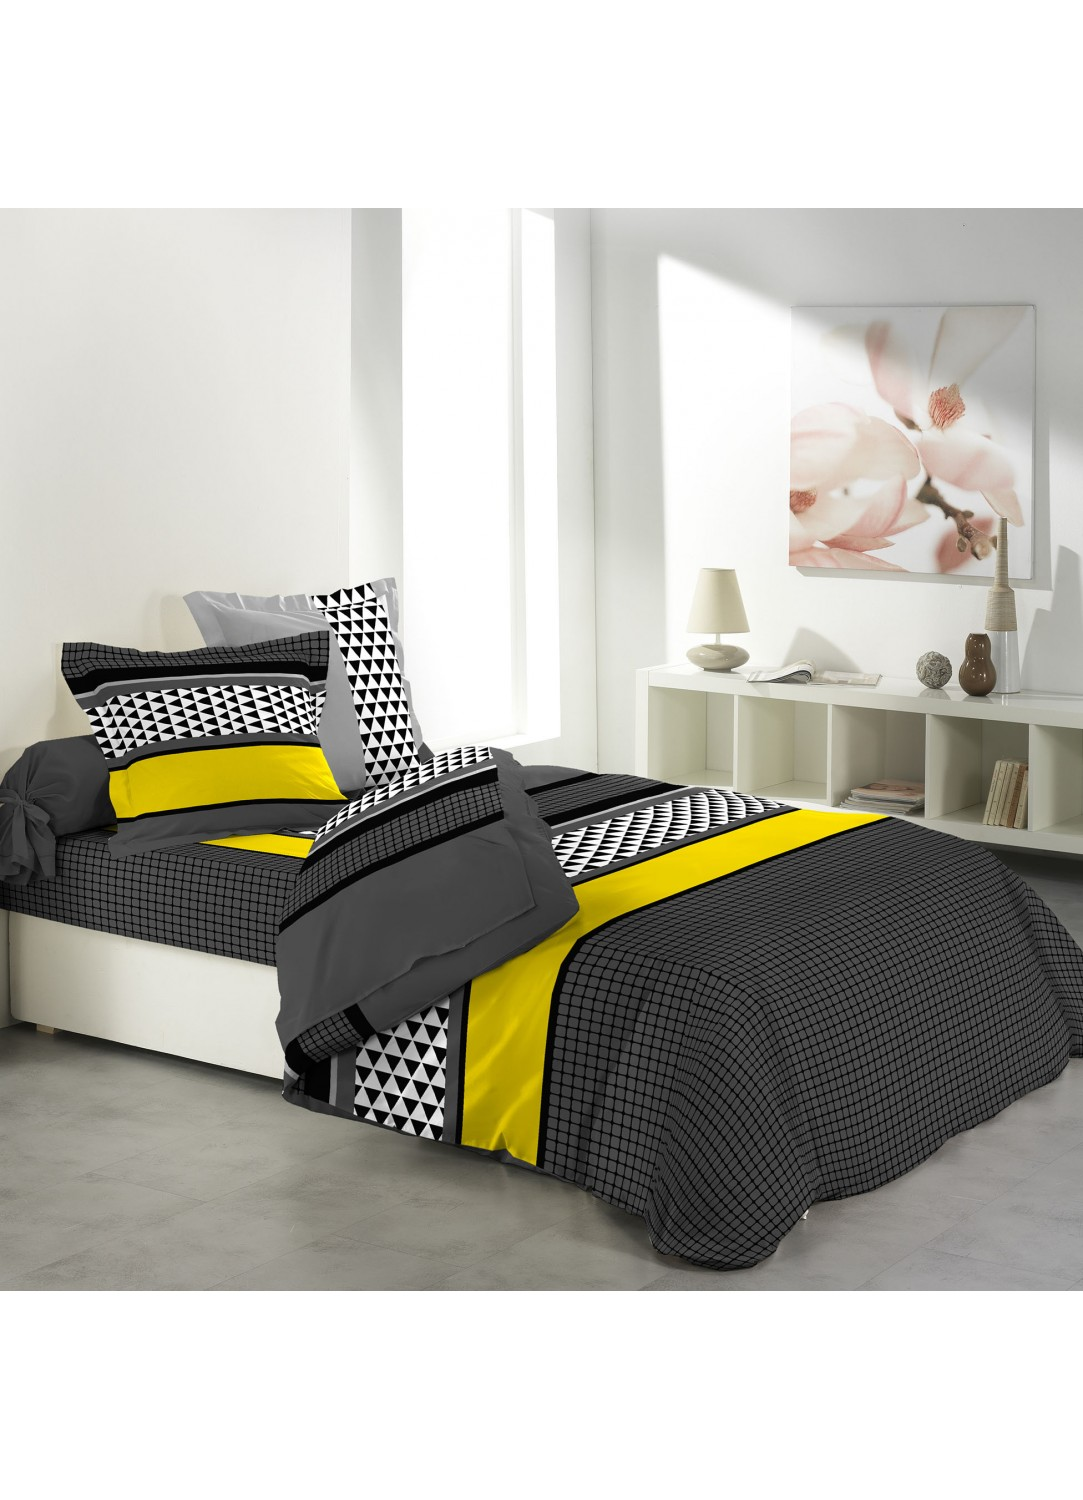 parure de lit 4 pi ces imprim e avec drap plat 2 personnes. Black Bedroom Furniture Sets. Home Design Ideas